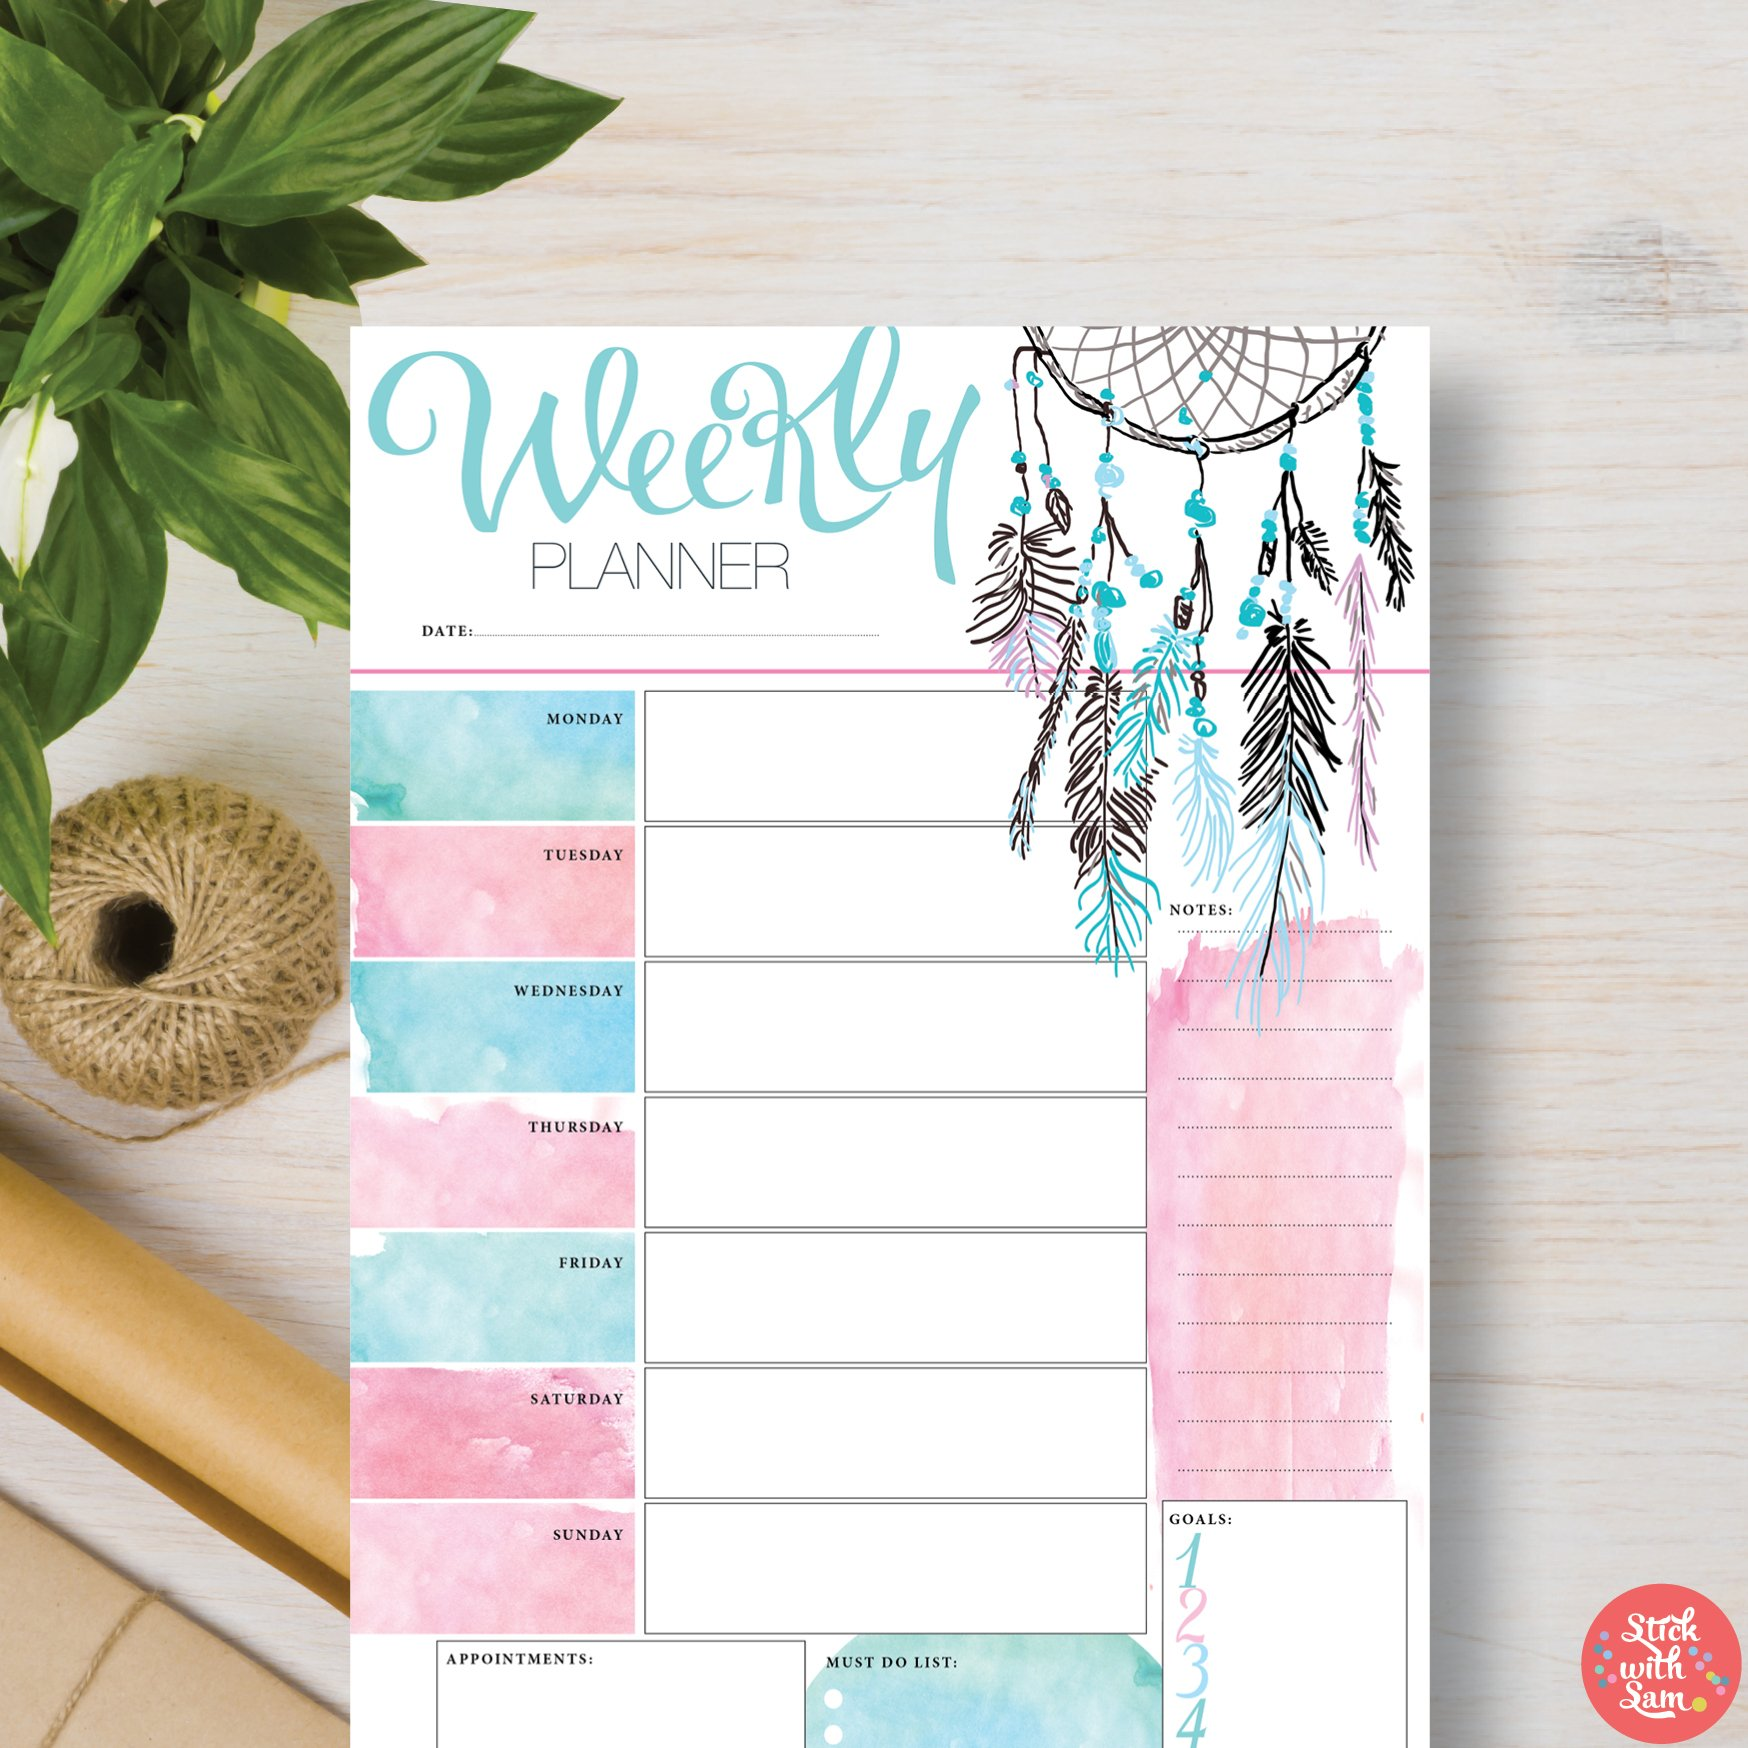 Cute Printable Weekly Planners Planner Template Simple Facile Dream Catcher A4 A5 Stationery Templates Creative Market